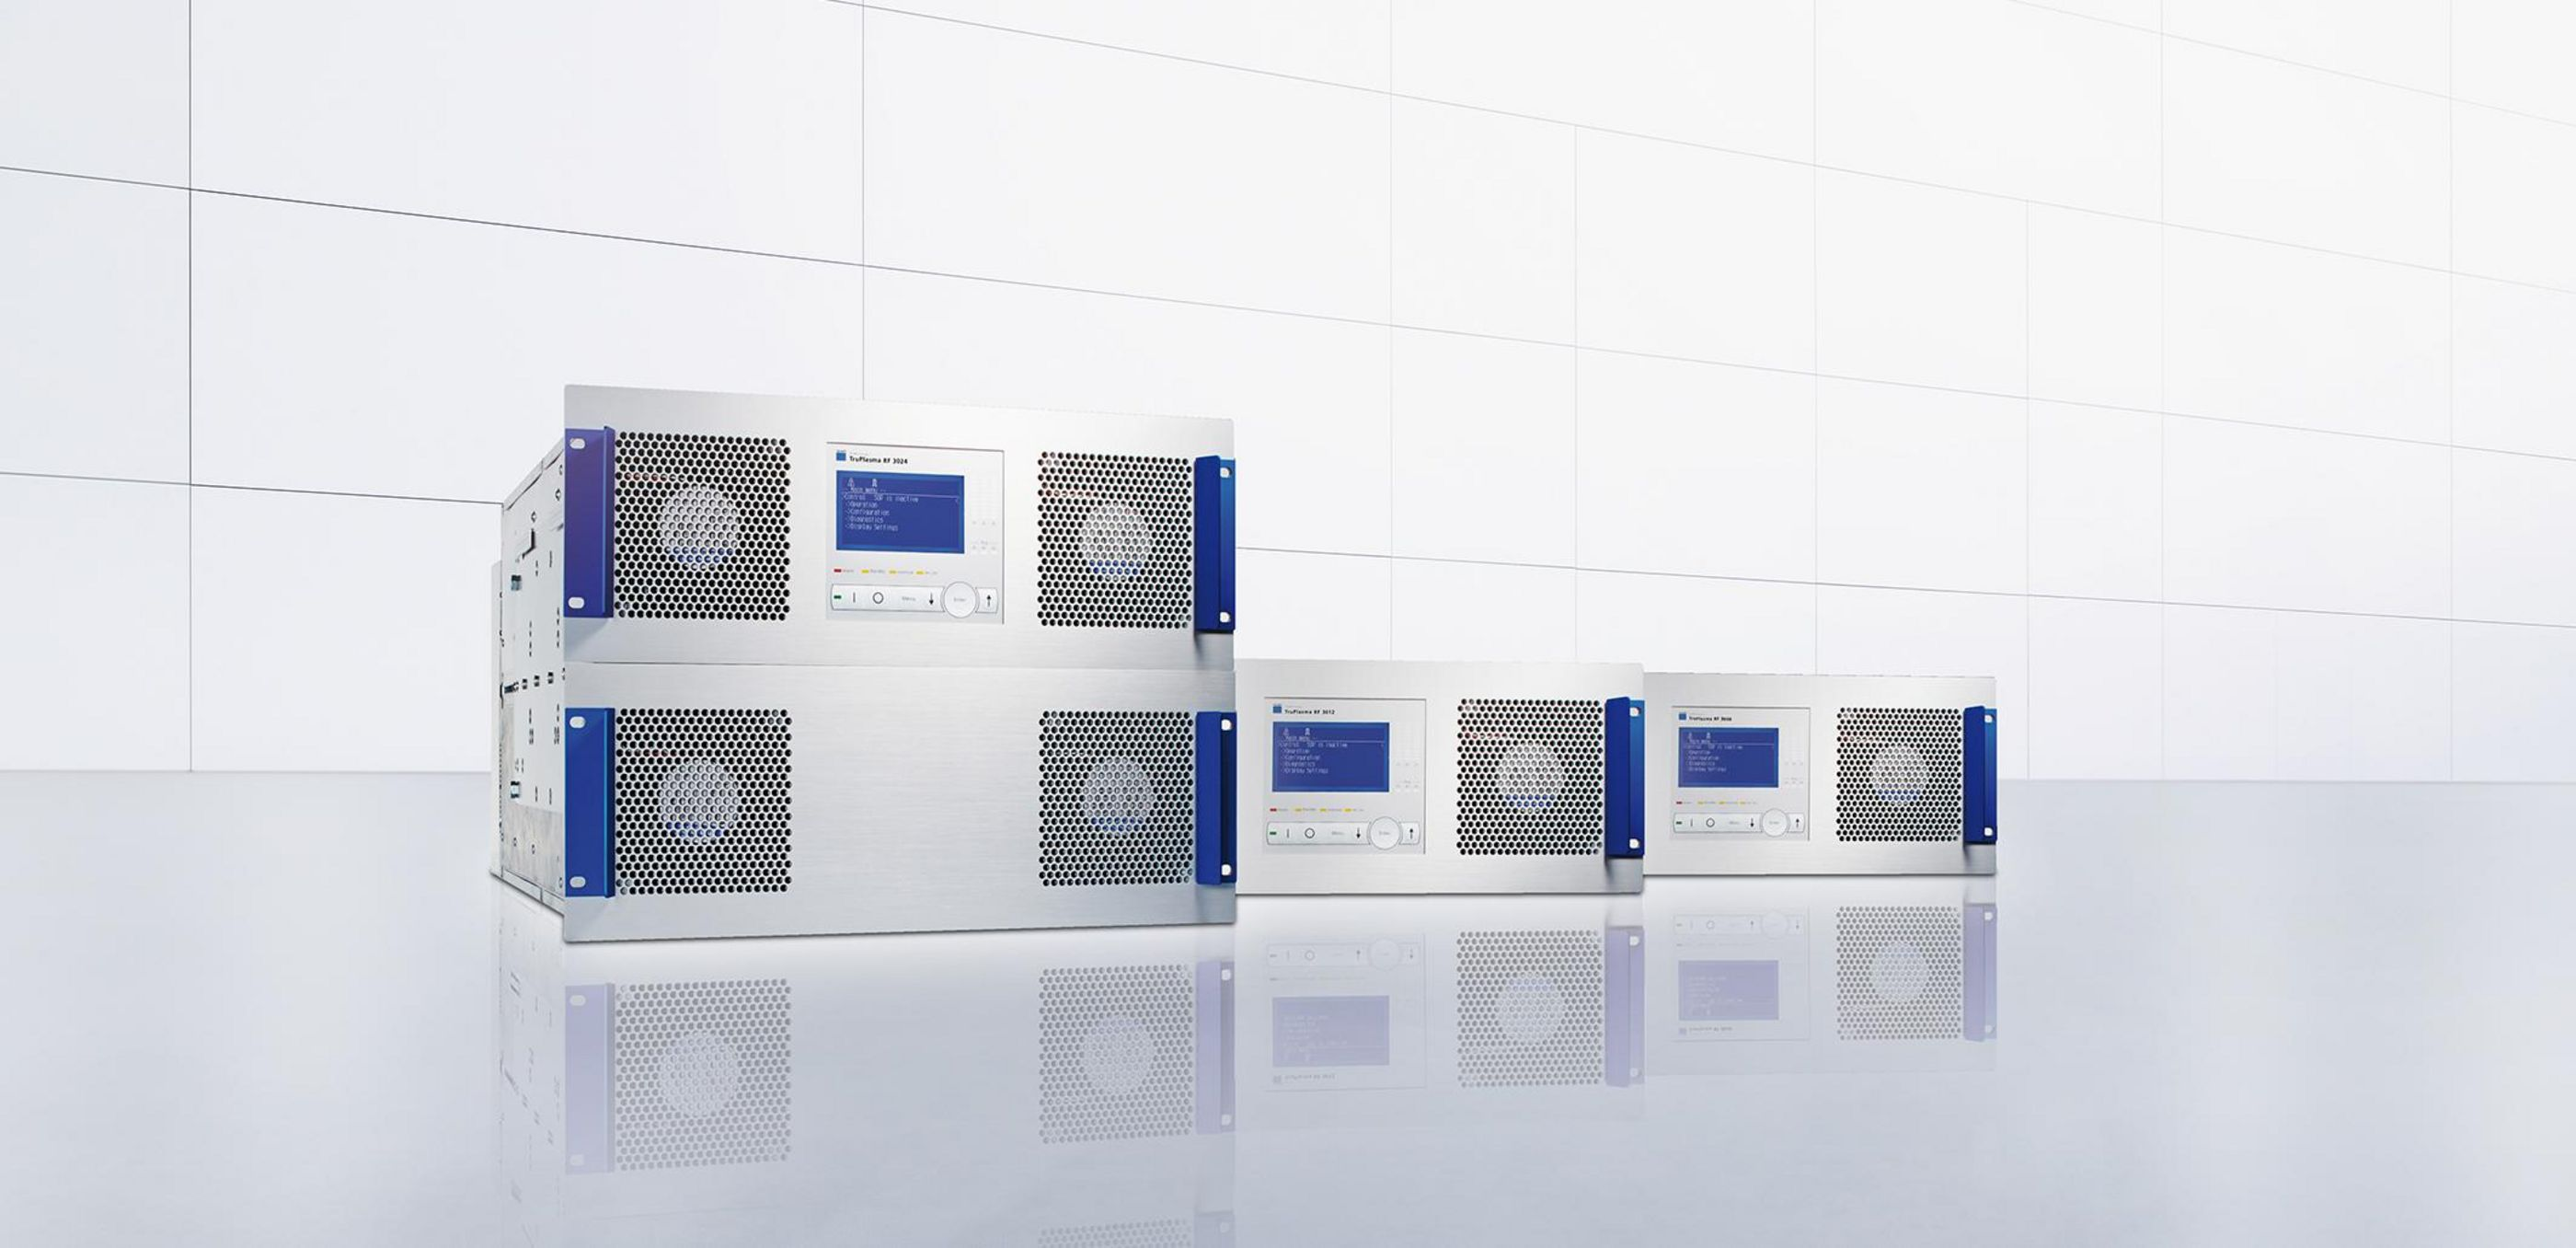 TruPlasma RF Series 3024 / 3012 / 3006 radio frequency generators